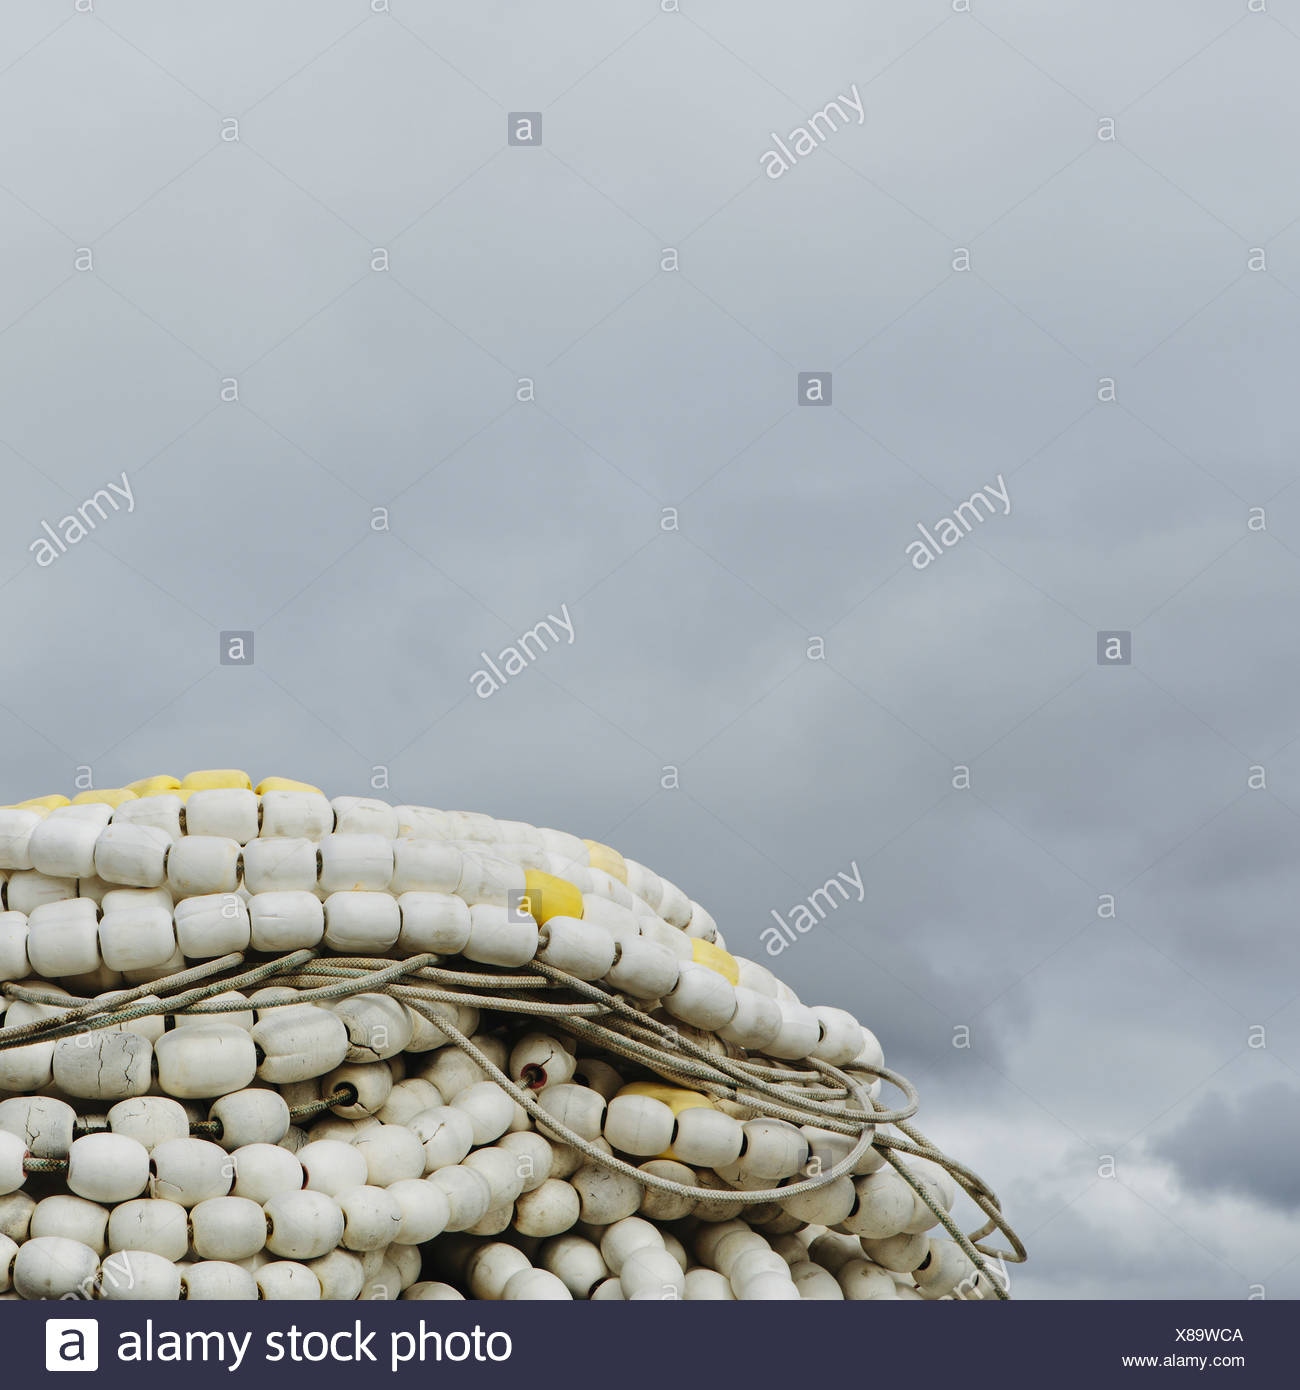 Pile of commercial fishing nets with white floats on the quayside at Fisherman's Terminal Seattle - Stock Image